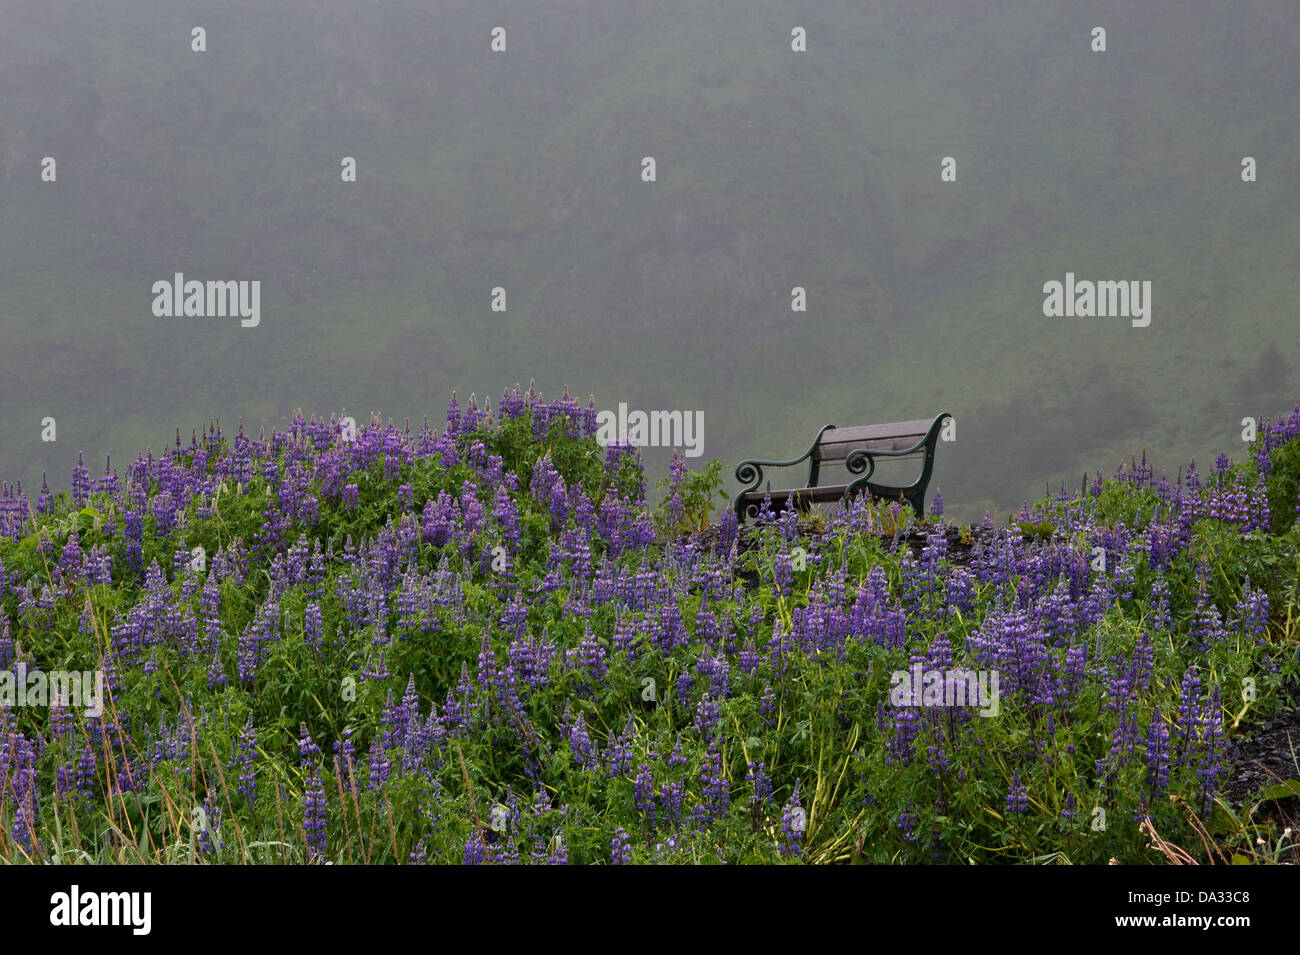 Nootka Lupin (Lupinus nootkatensis) flowers with bench early morning mist   Southern Iceland Europe - Stock Image